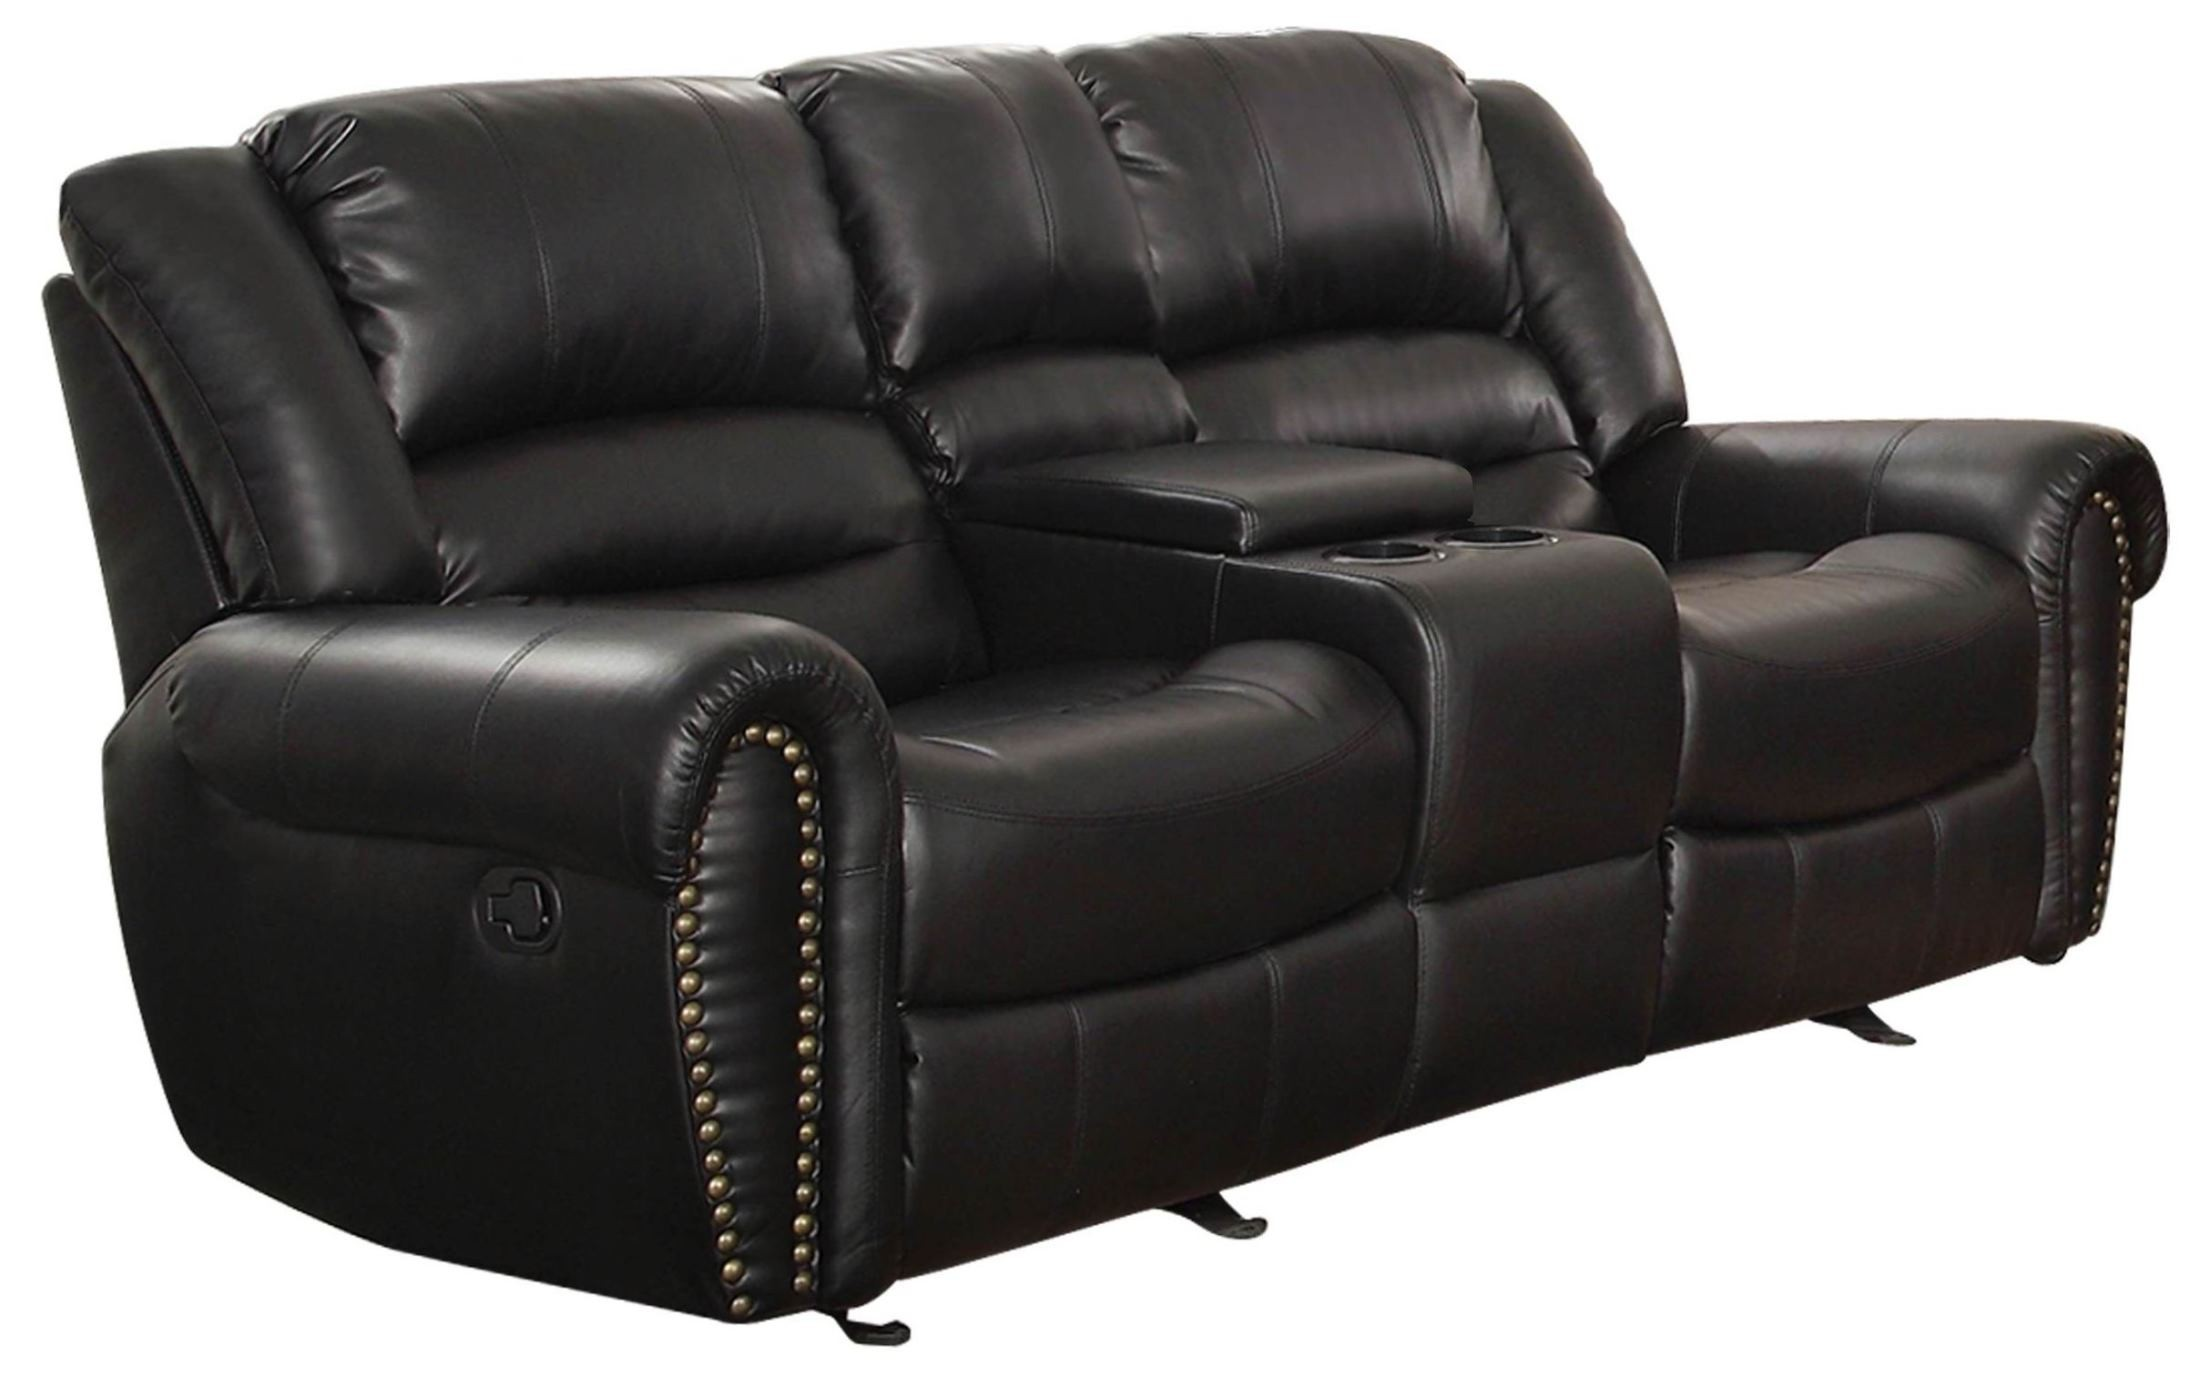 Center Hill Black Power Double Reclining Console Loveseat From Homelegance 9668blk 2pw